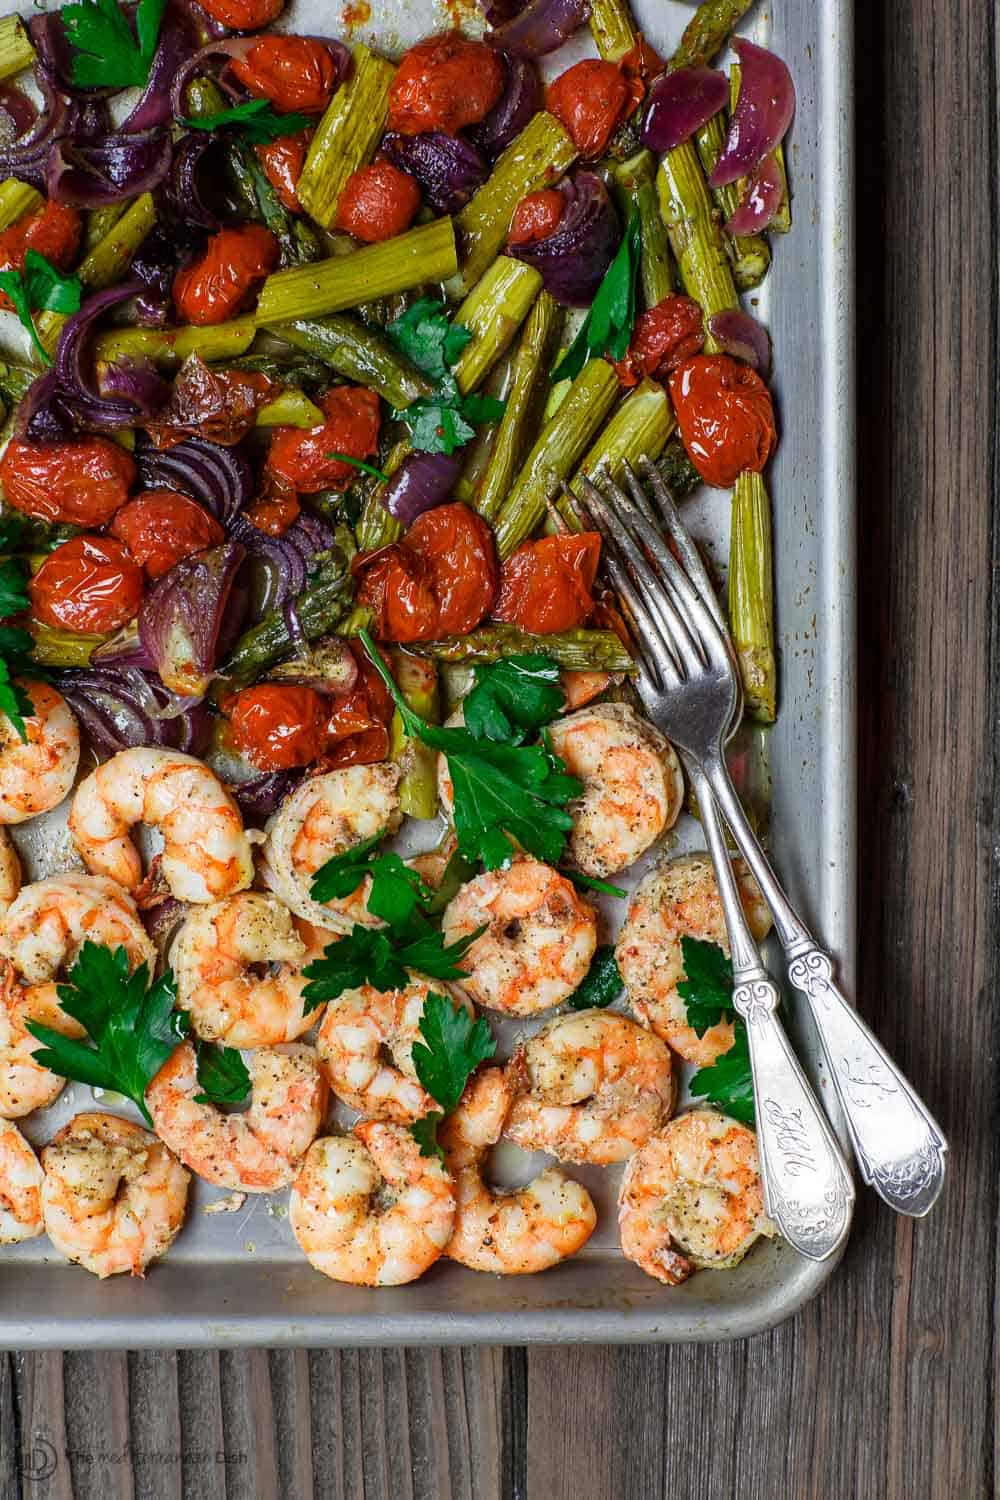 Mediterranean Sheet Pan Shrimp and Veggies | The Mediterranean Dish. Easy, quick baked shrimp with veggies, all dressed in a Mediterranean citrus-ginger sauce. Ready in 25 minutes! From TheMediterraneanDish.com #shrimp #mediterranean #mediterraneandiet #easyrecipe #onepanmeal #sheetpandinner #seafood #healthyrecipes #whole30 #glutenfree